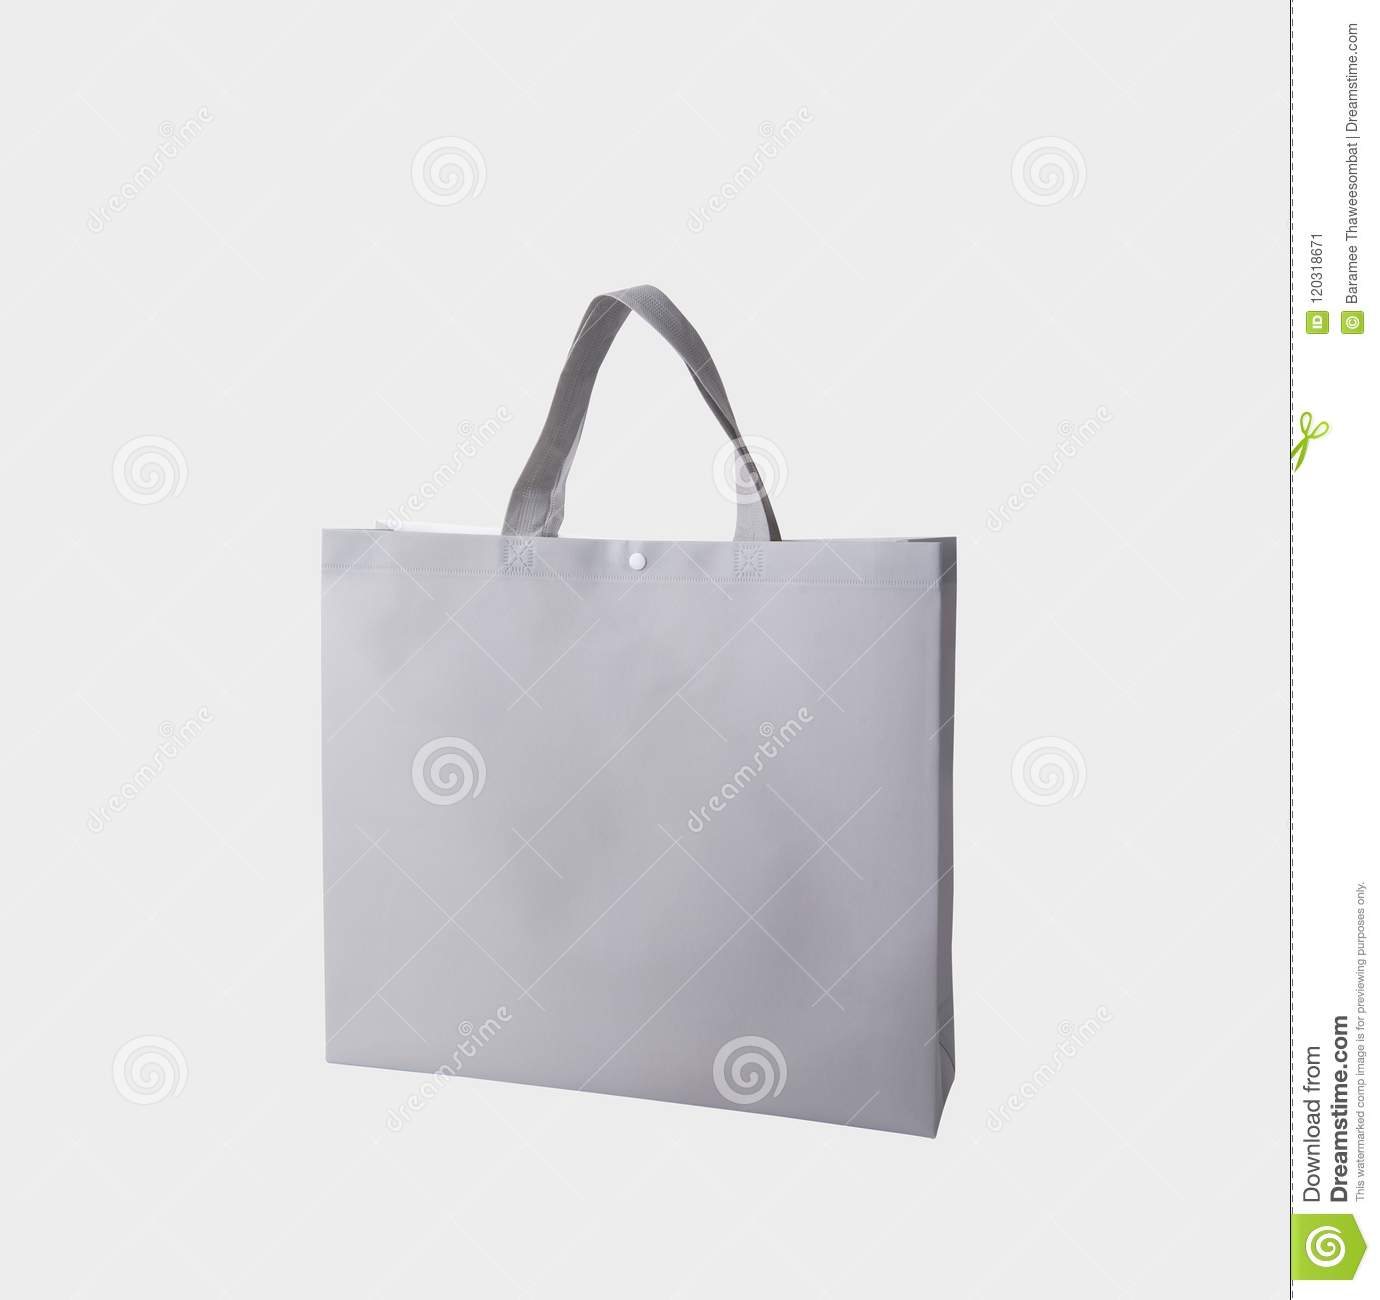 f8b89a31 Bag Canvas Fabric For Mockup Blank Template Isolated On White Stock ...